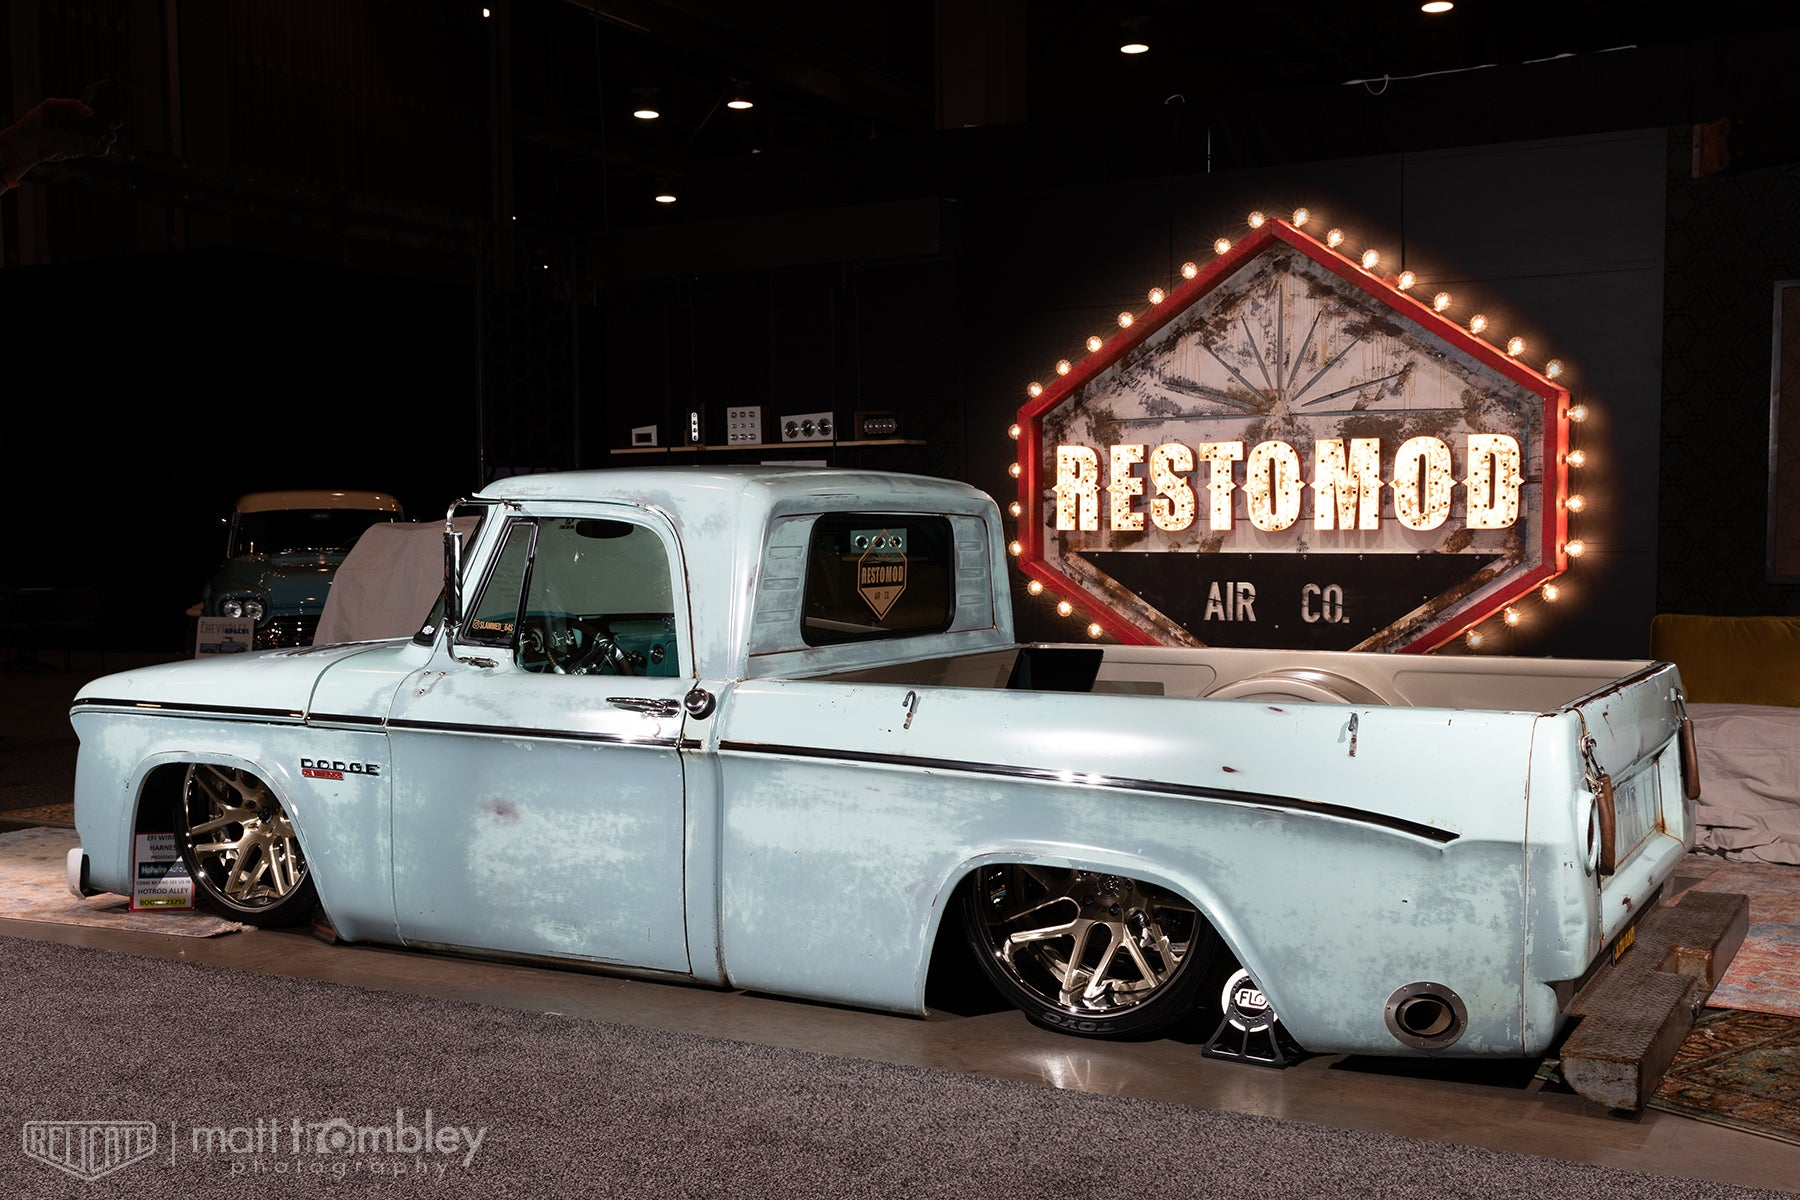 Relicate Distressed Vintage Oak Leather interior 1964 Dodge D100 pickup truck sema 2019 restomod air booth